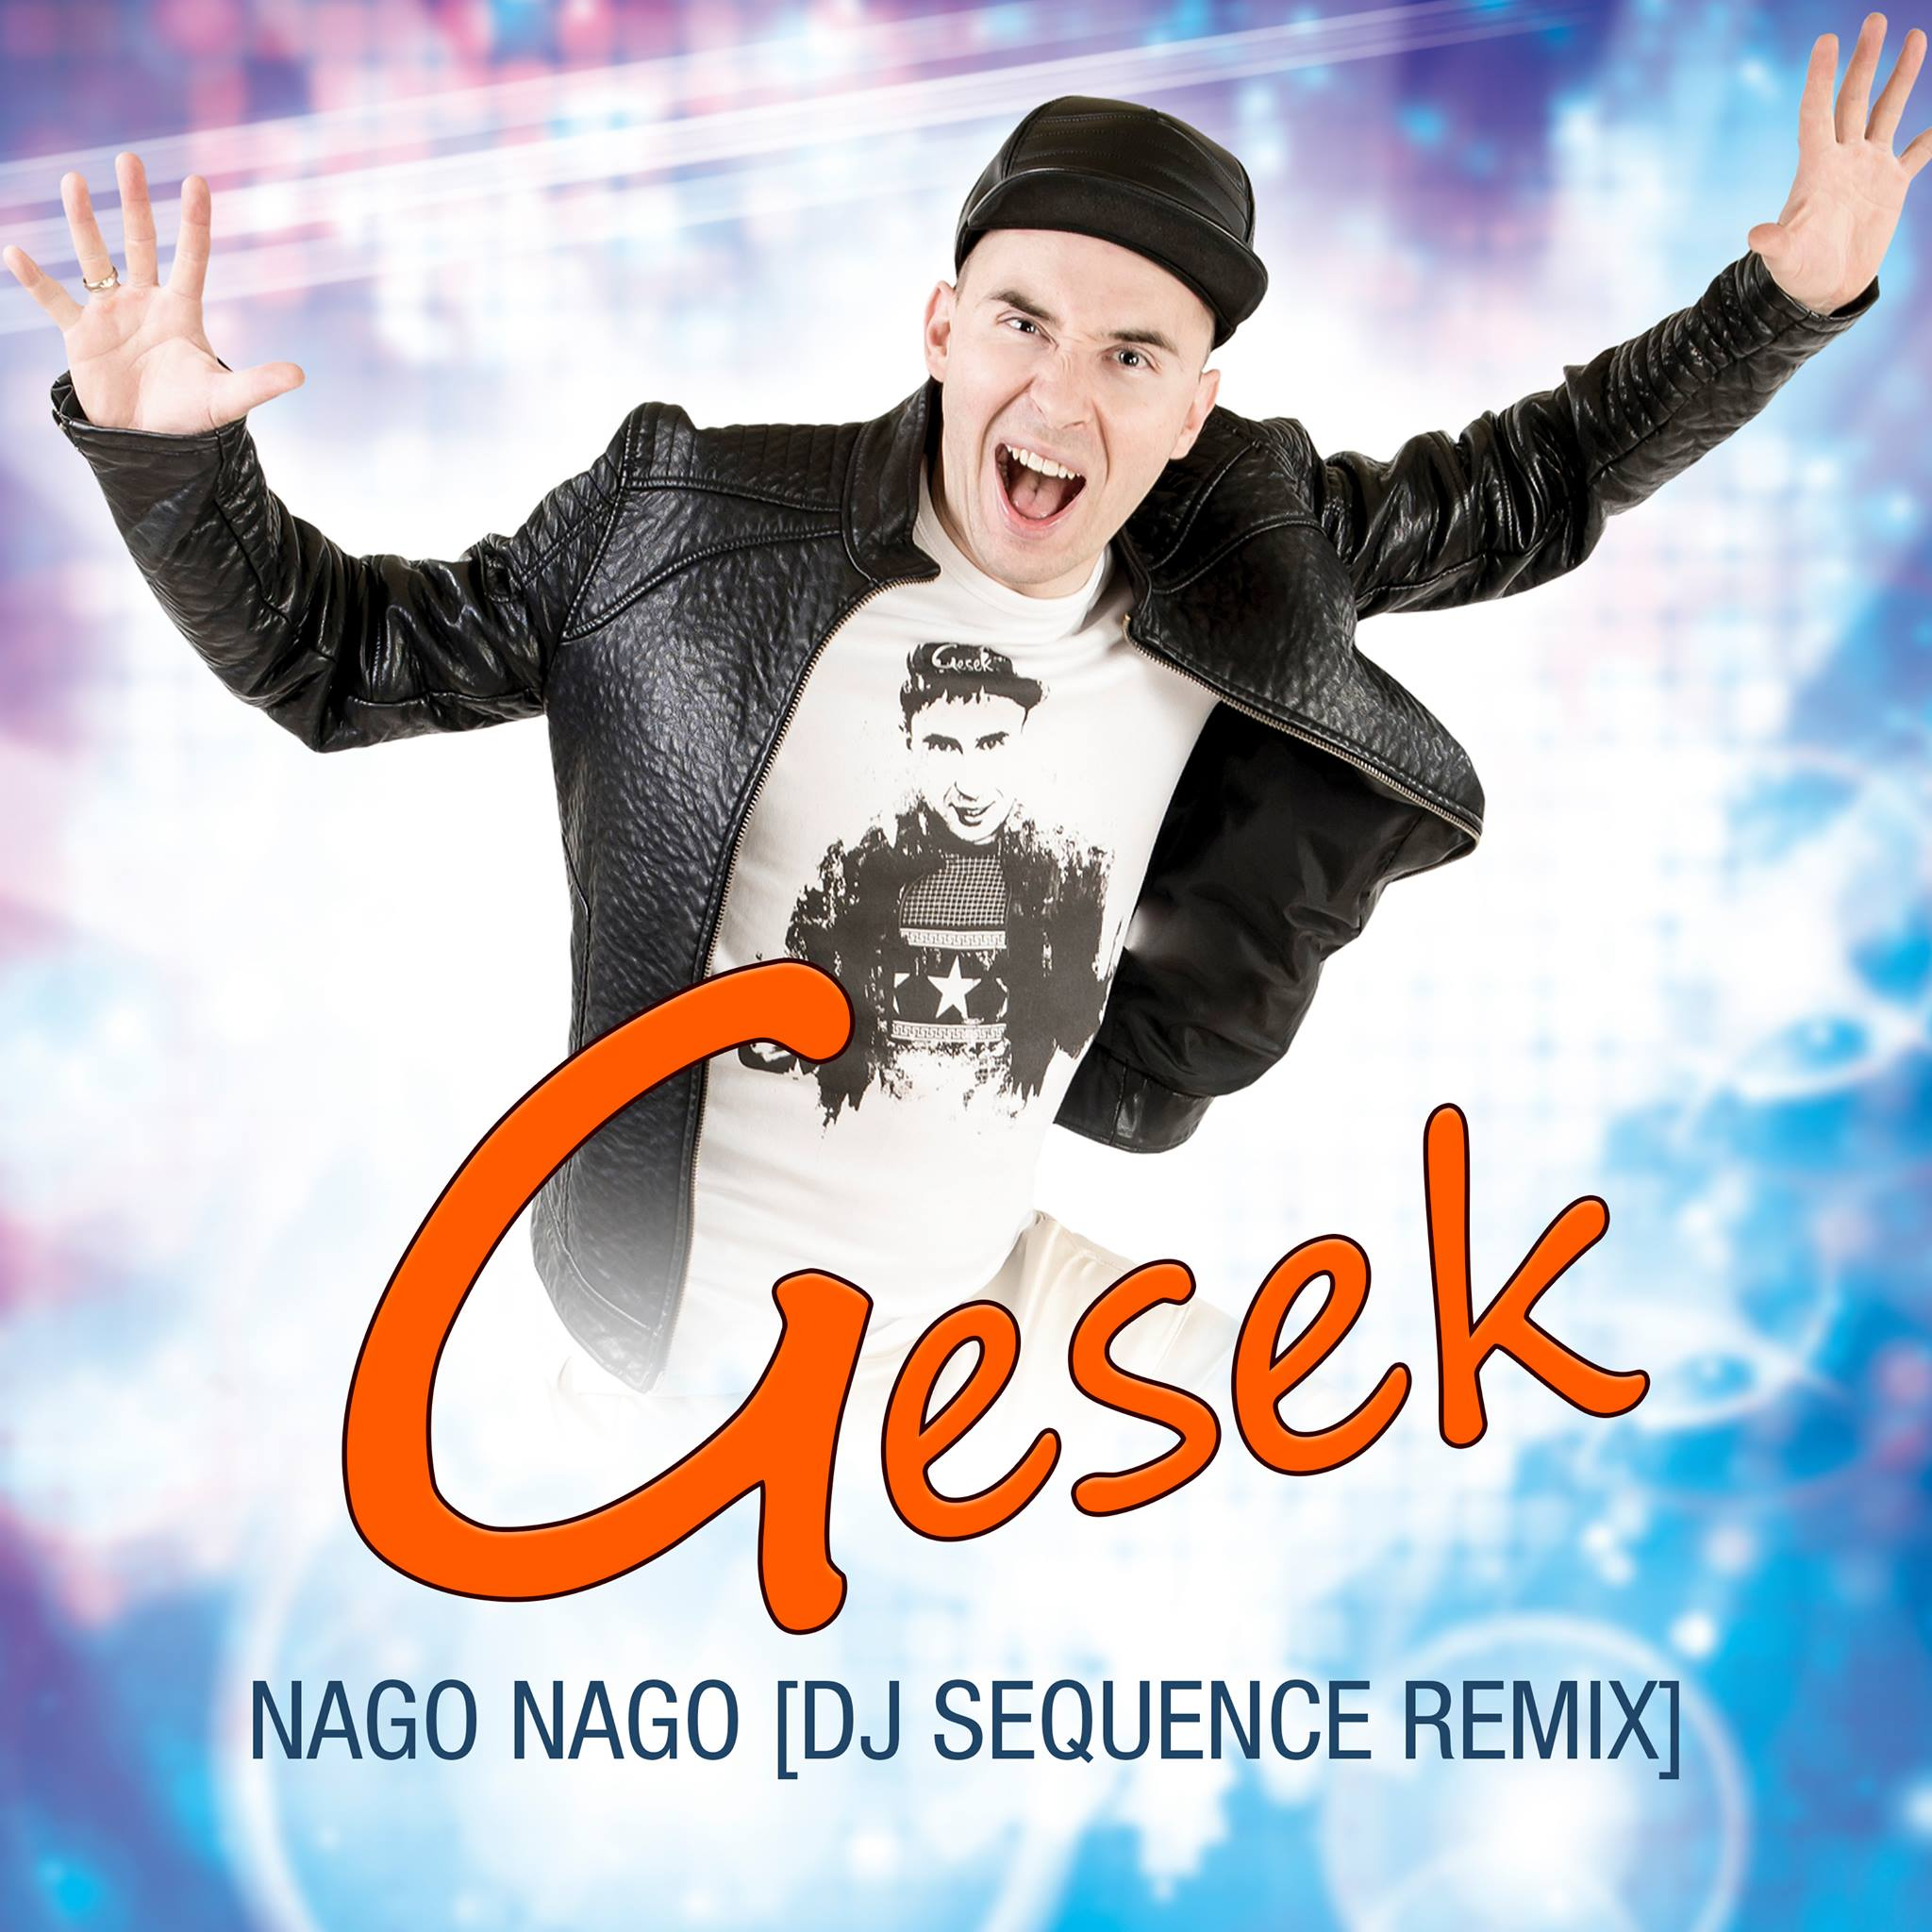 Gesek - Nago Nago (DJ Sequence Remix)